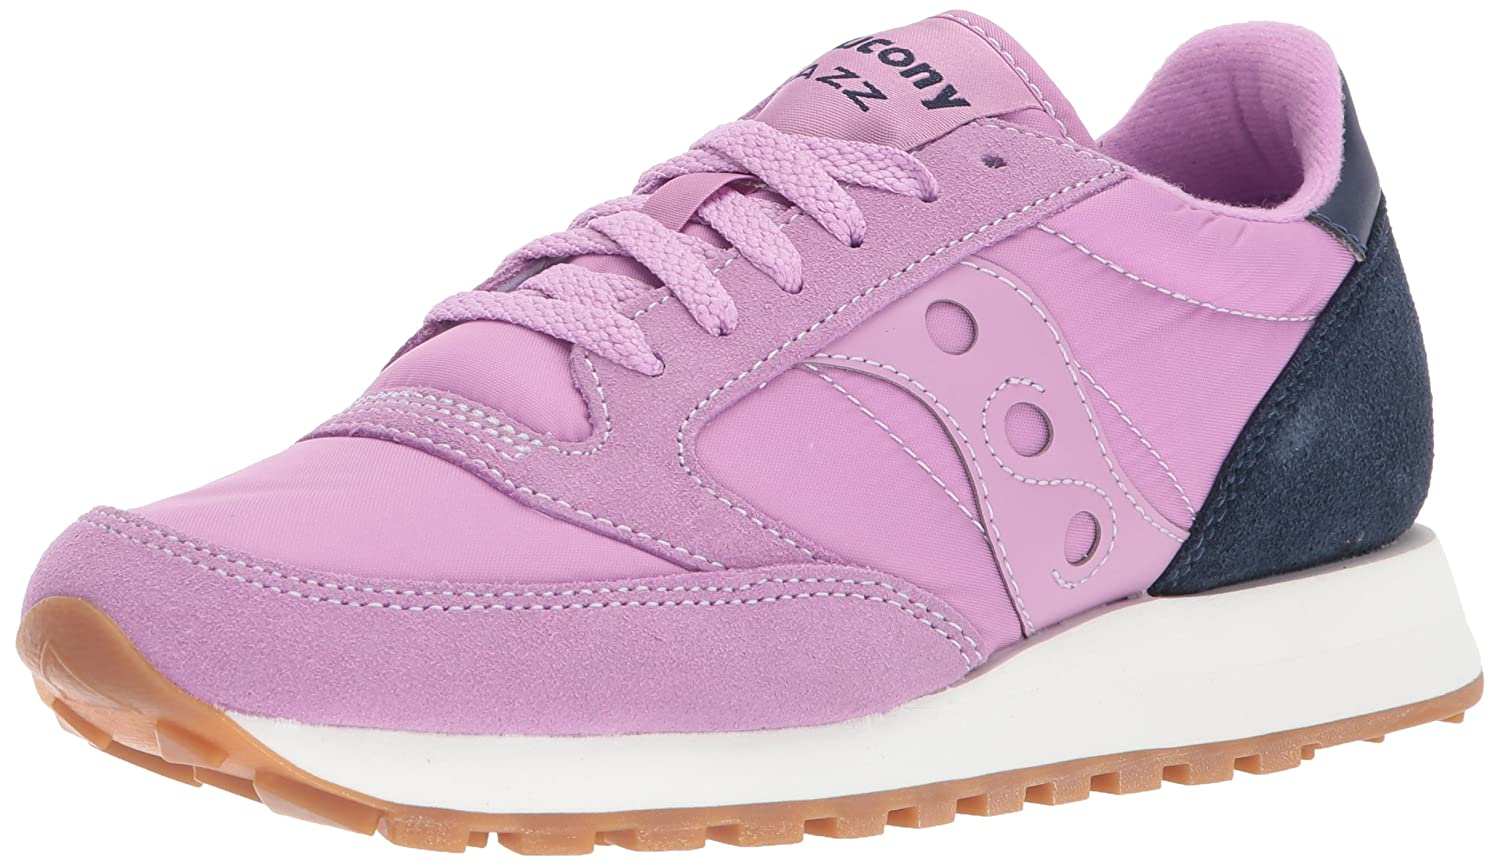 Saucony Originals Women's Jazz Original Sneaker, Coral Cream, 7.5 Medium US B01N0DXLTM 10 B(M) US|Lavender Charcoal